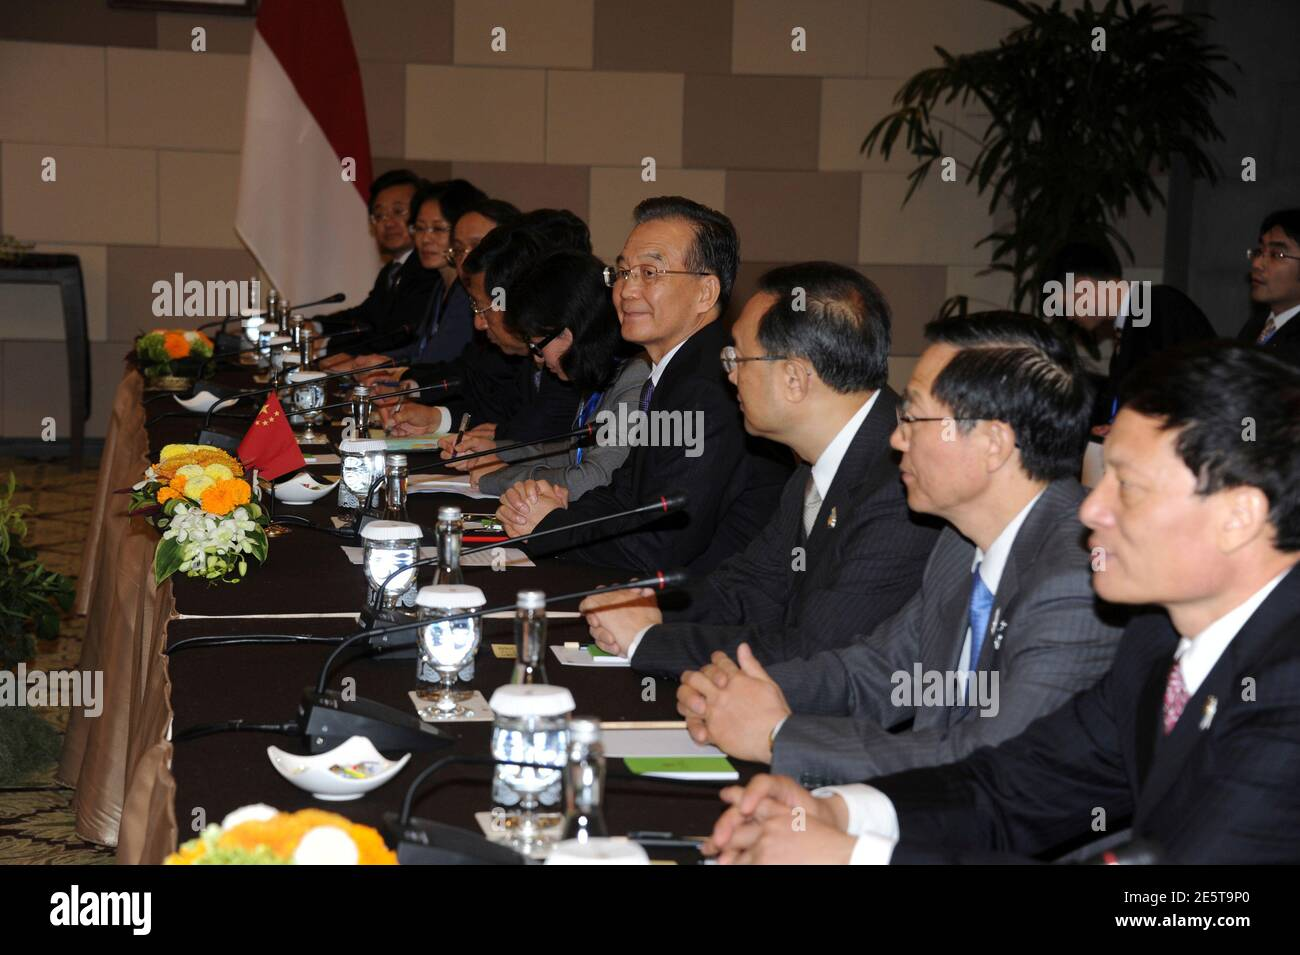 China's Premier Wen Jiabao (C) sits with his delegation during a bilateral talk with Indonesia's President Susilo Bambang Yudhoyono at the side of ASEAN Summit in Nusa Dua, Bali November 17, 2011. REUTERS/Romeo Gacad/Pool  (INDONESIA - Tags: POLITICS) Banque D'Images